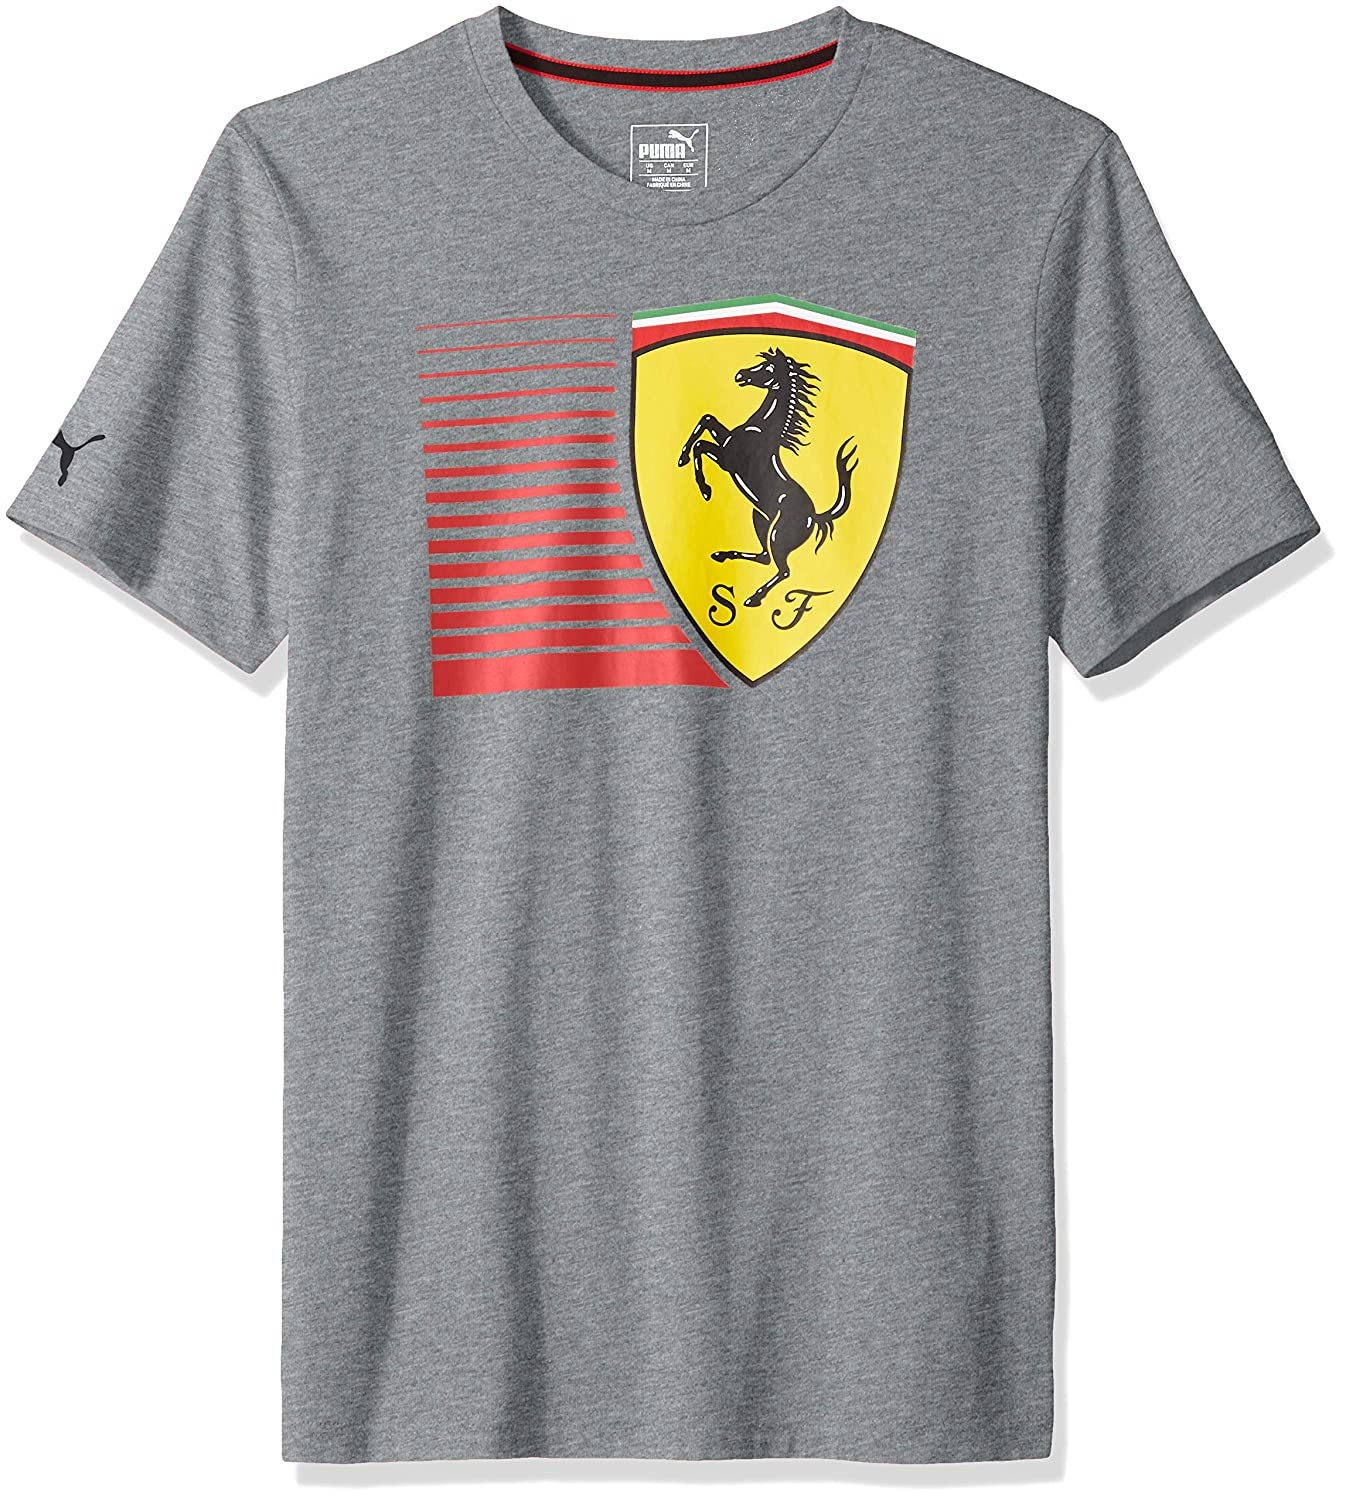 867cc905b6b4 Puma Men s Scuderia Ferrari Big Shield T-Shirt  Amazon.in  Clothing    Accessories